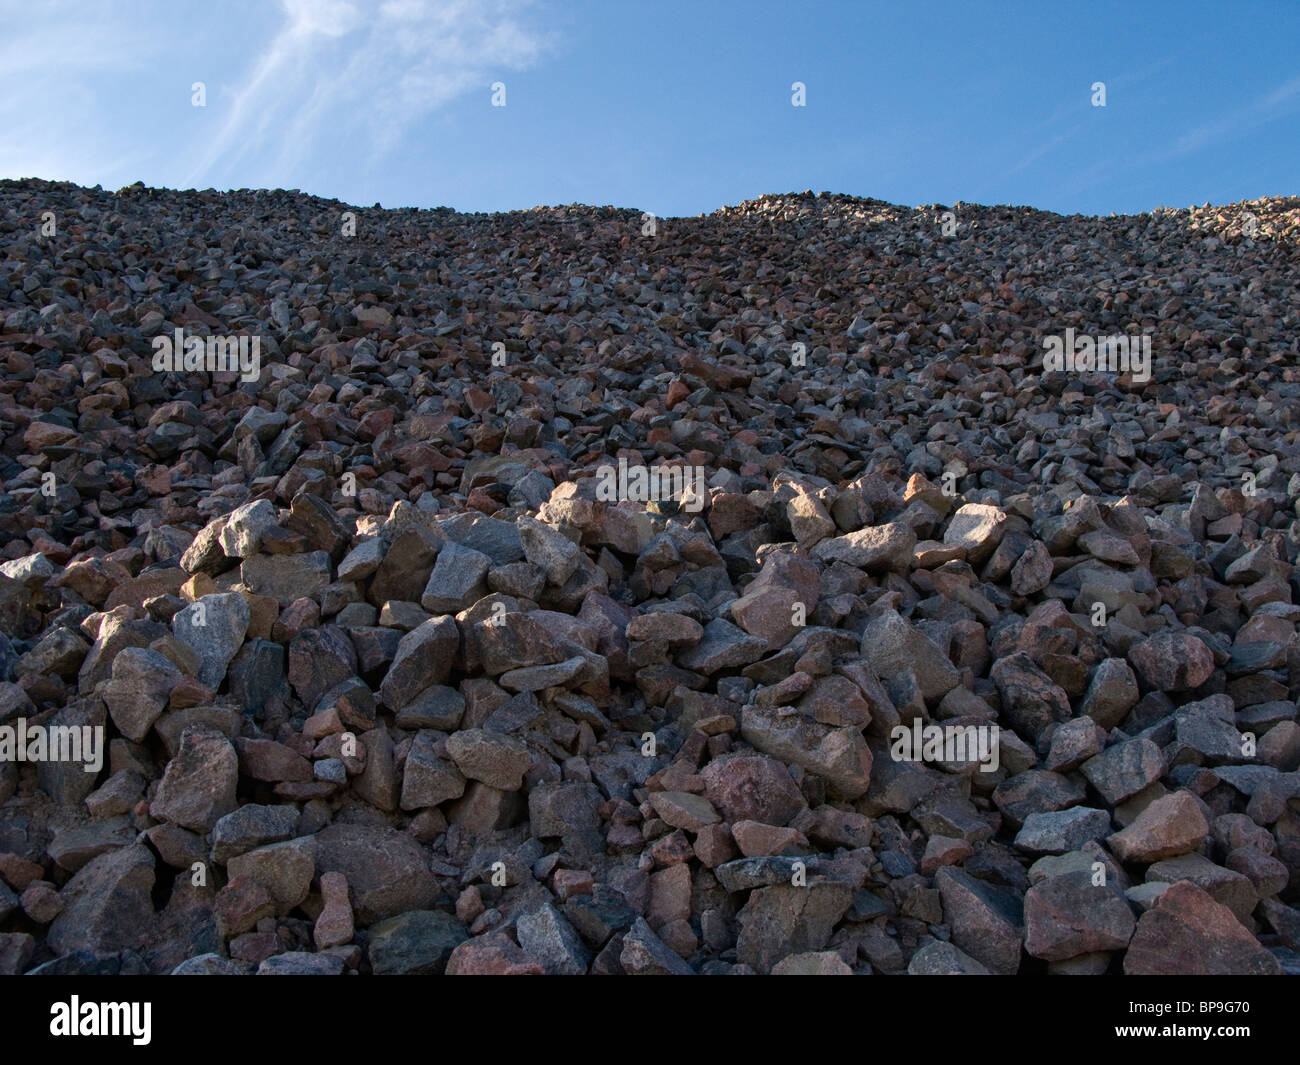 A pile of shattered stones from a mountain. - Stock Image